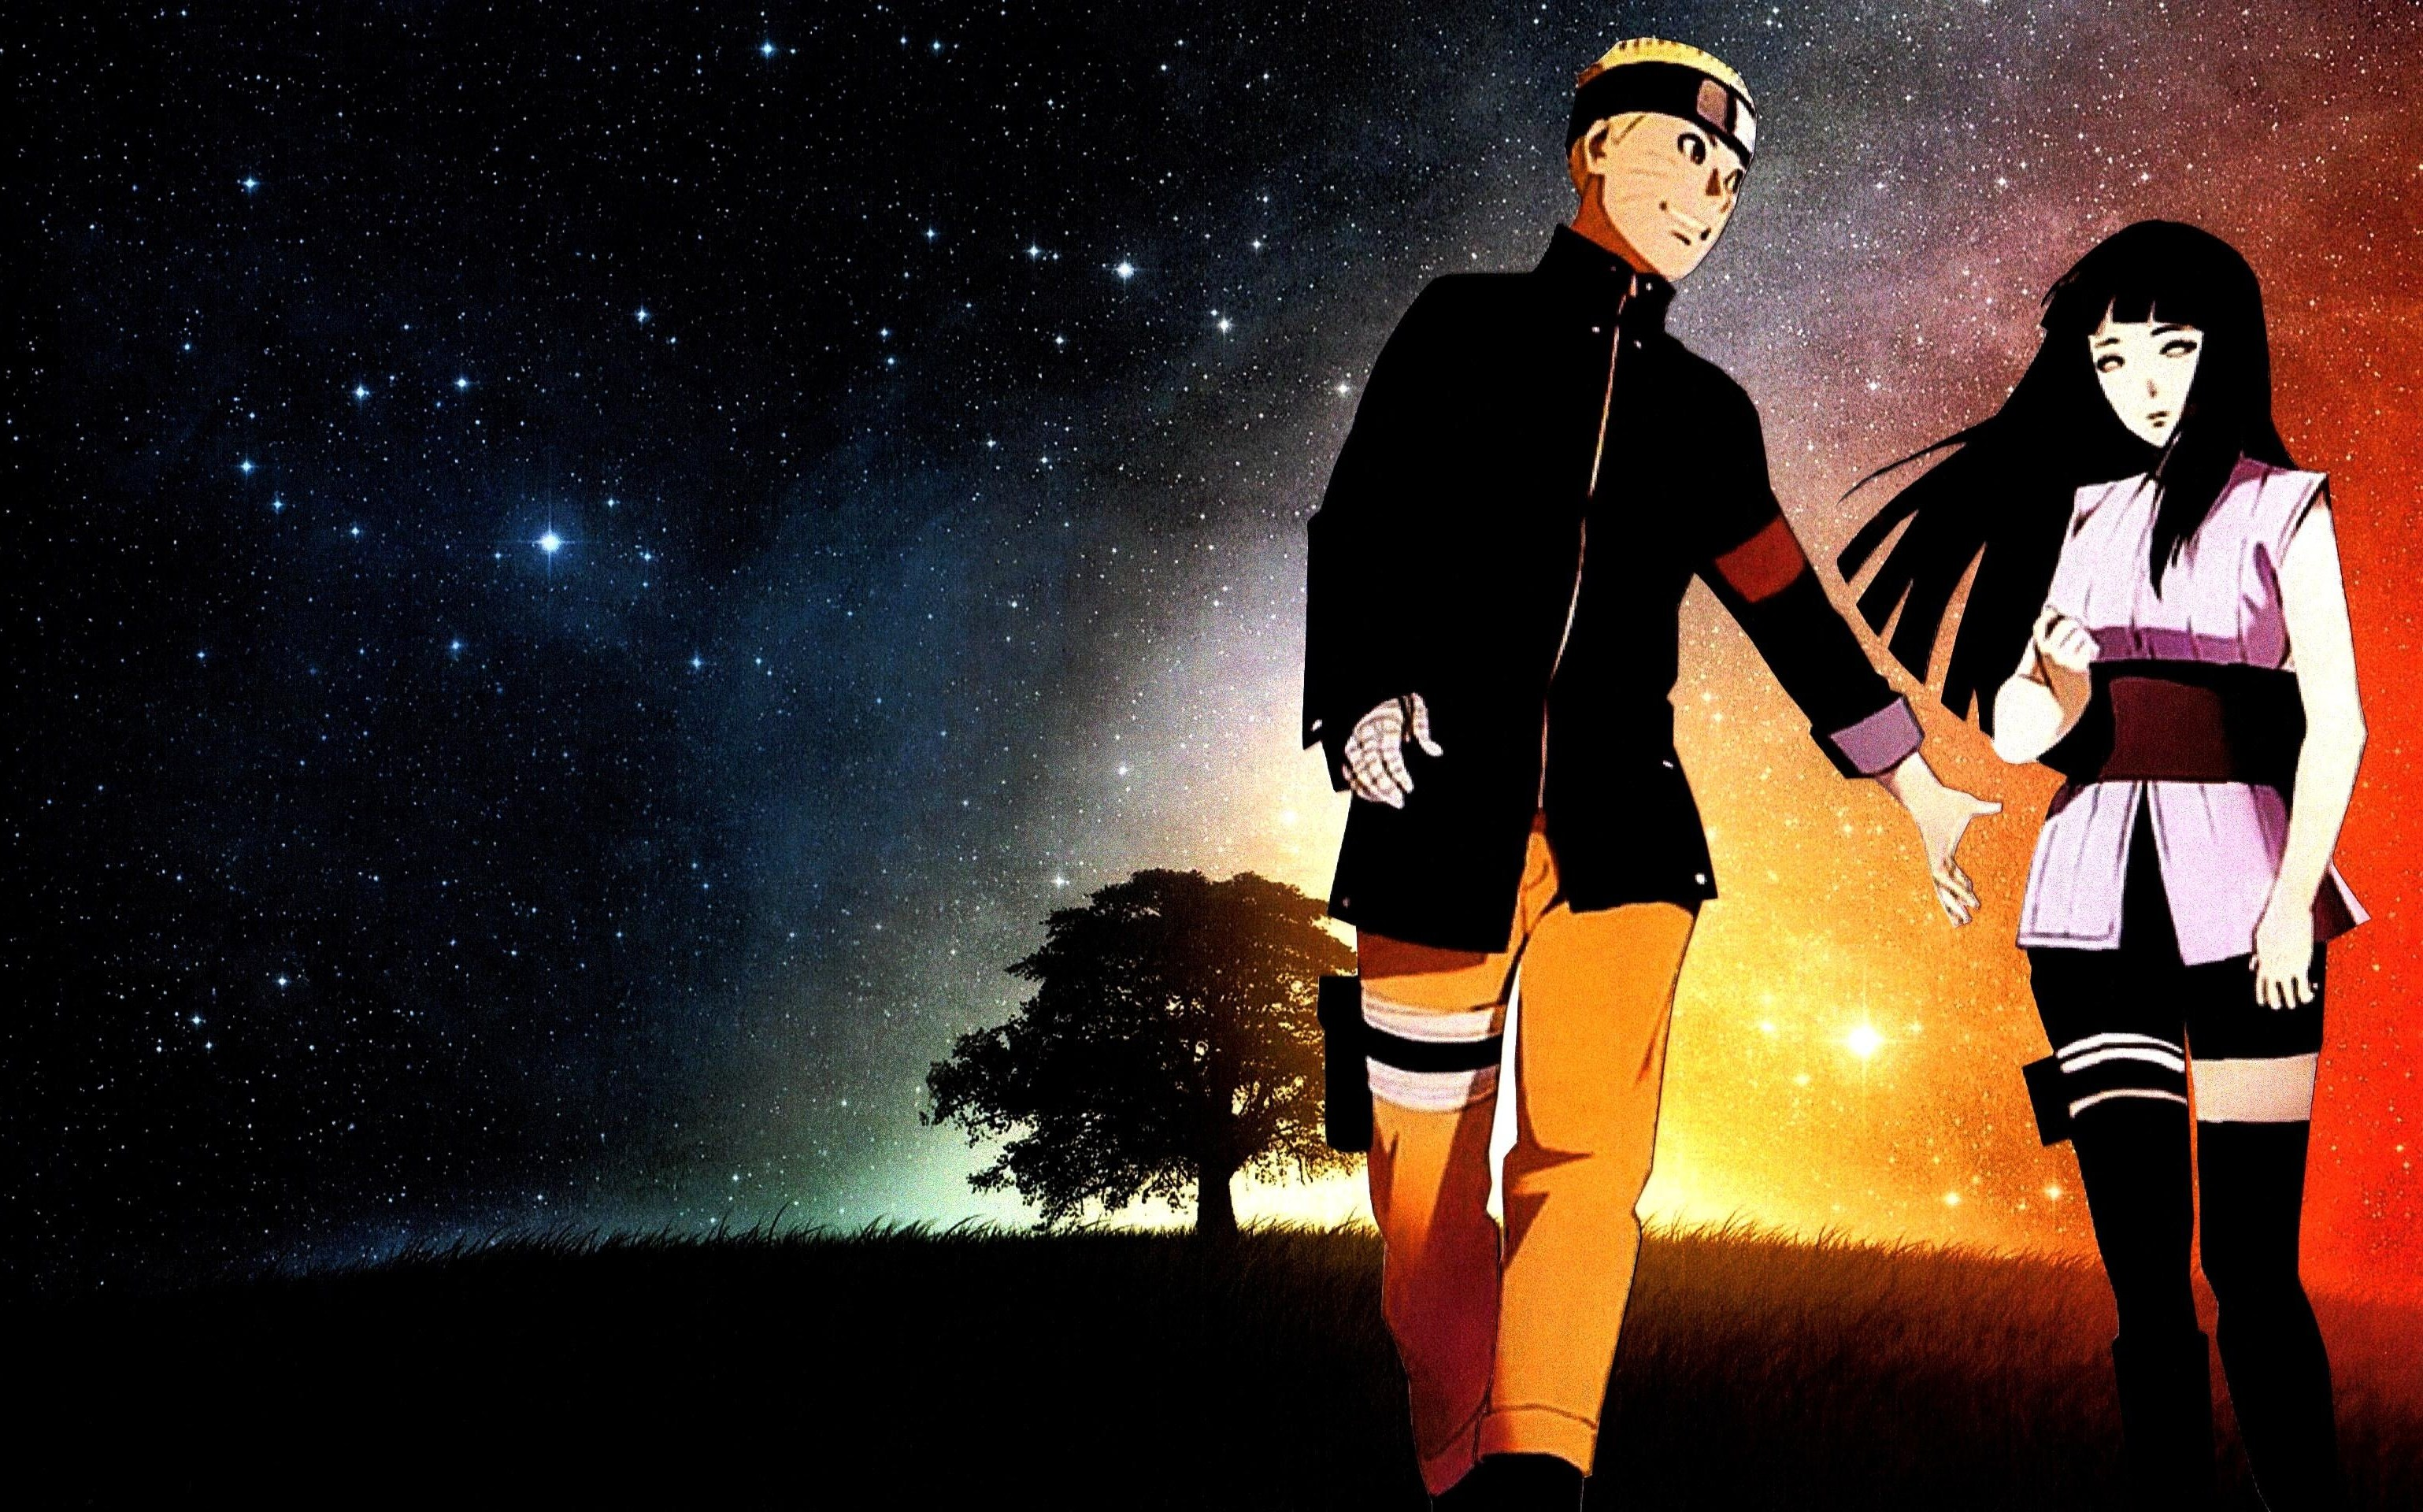 3077x1920 Best ideas about Naruto And Sasuke Wallpaper on Pinterest 1024×768 Naruto  Shippuden Wallpaper (44 Wallpapers) | Adorable Wallpapers | Desktop |  Pinterest ...